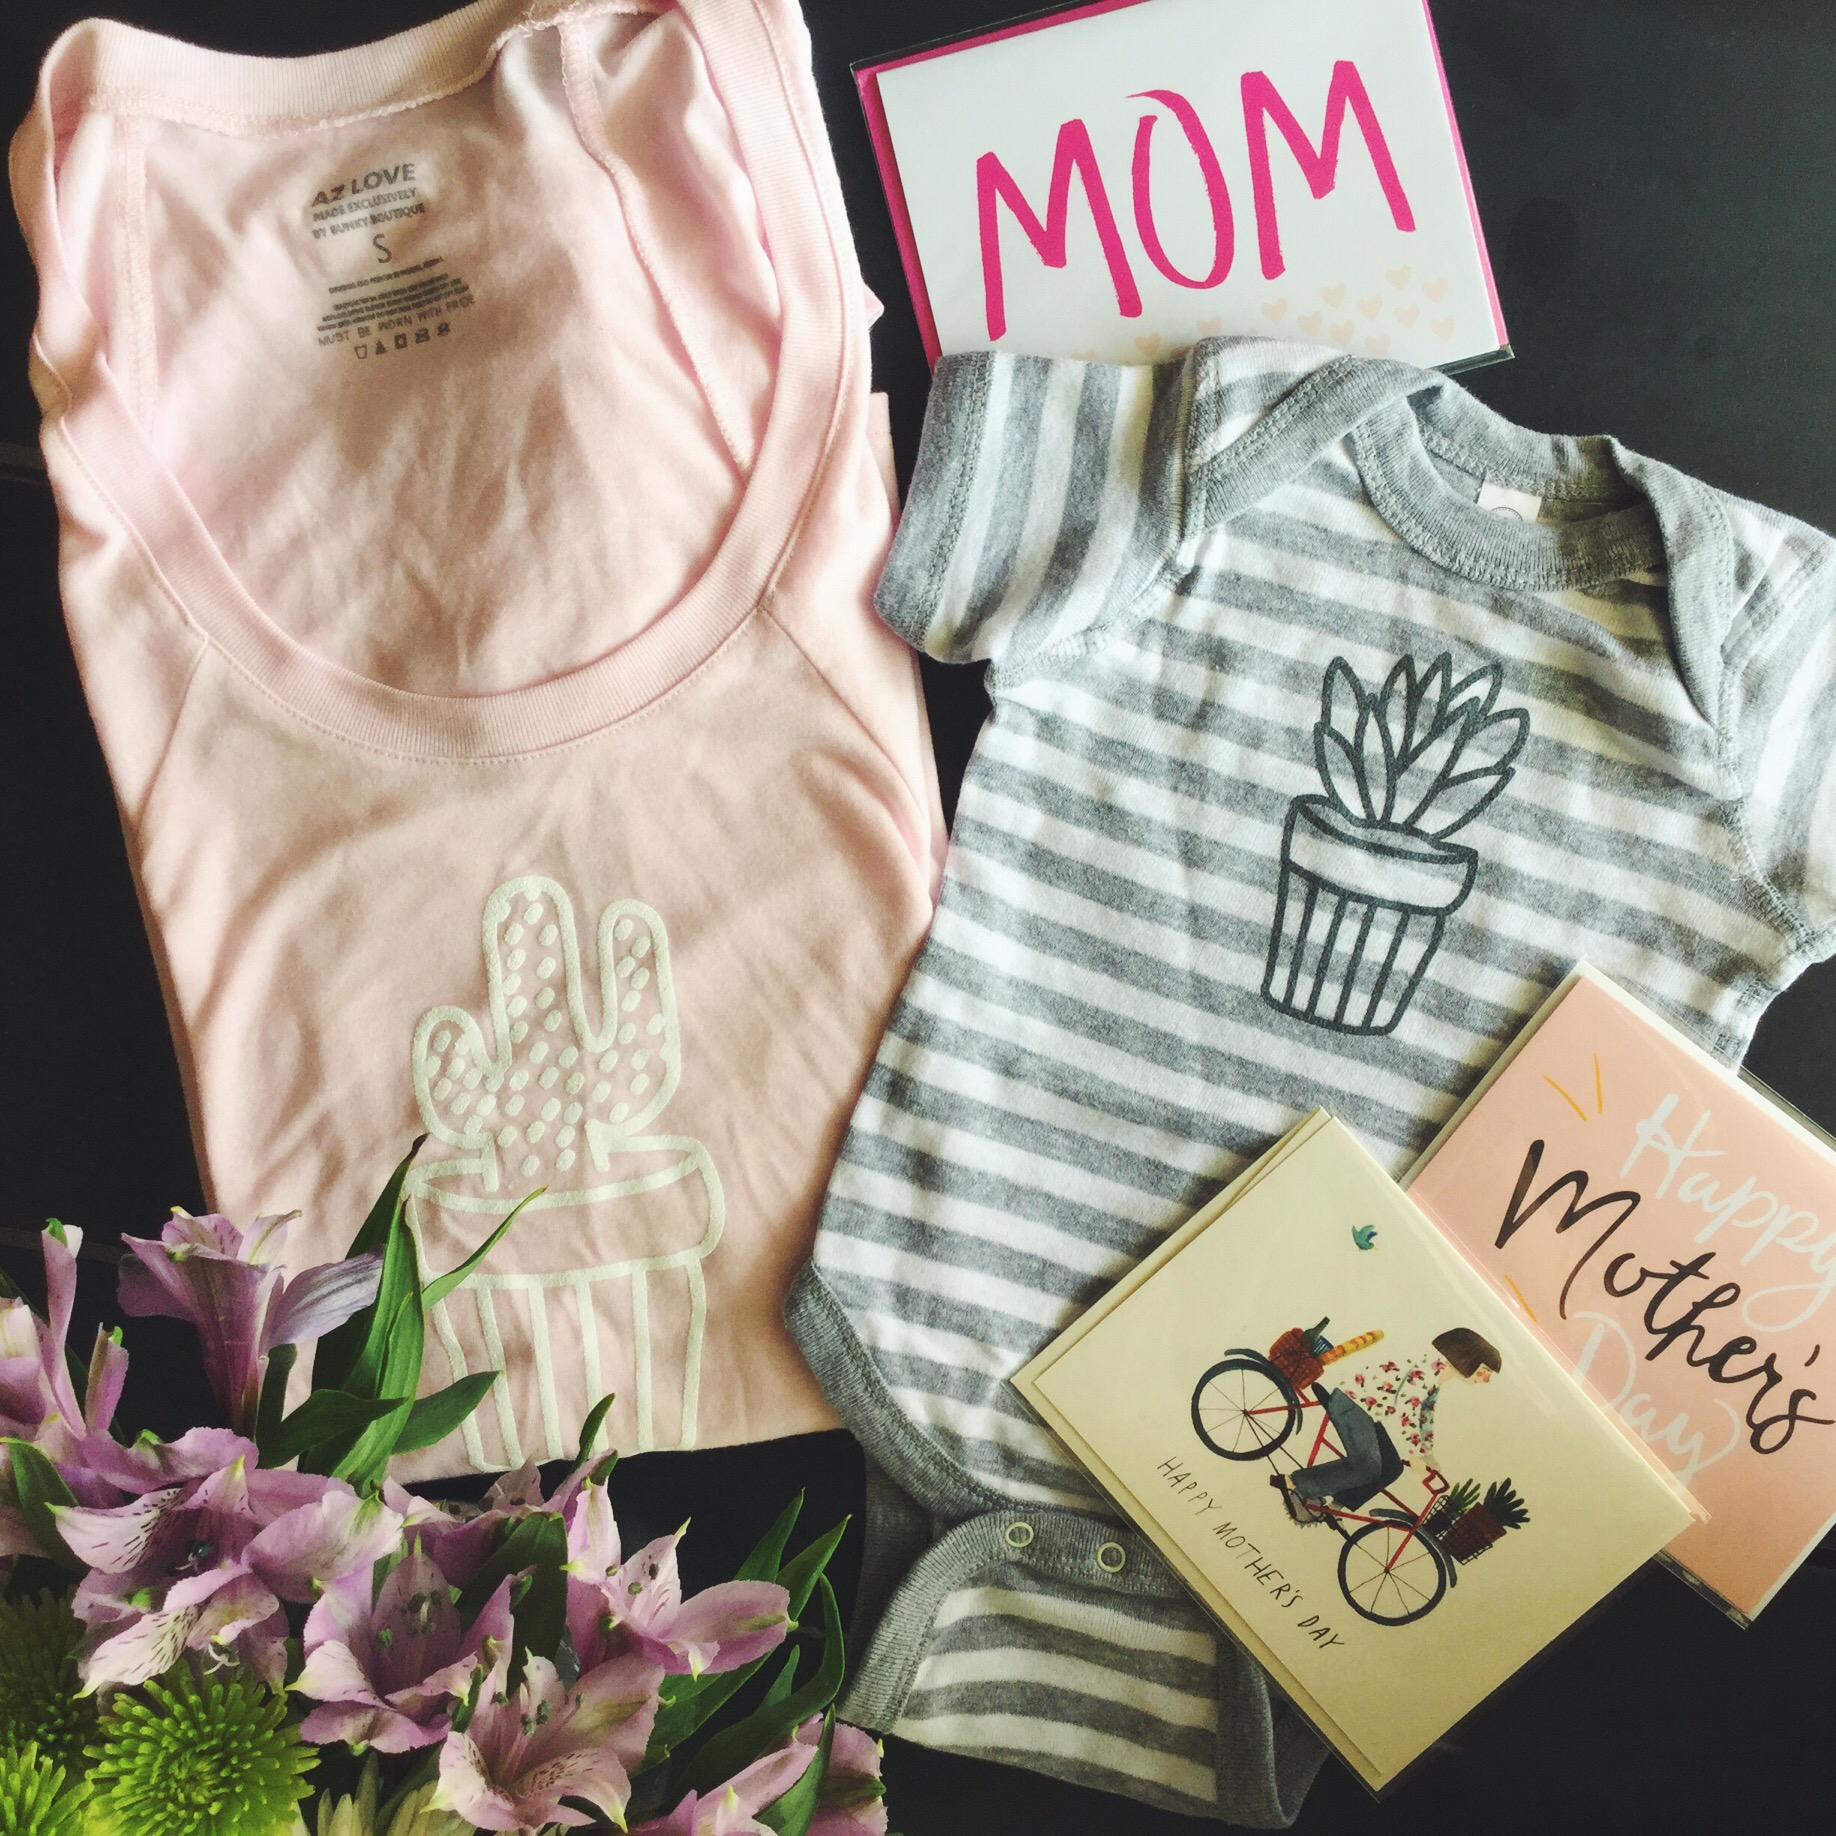 Potted Tee & Potted Bodysuit. Too cute!